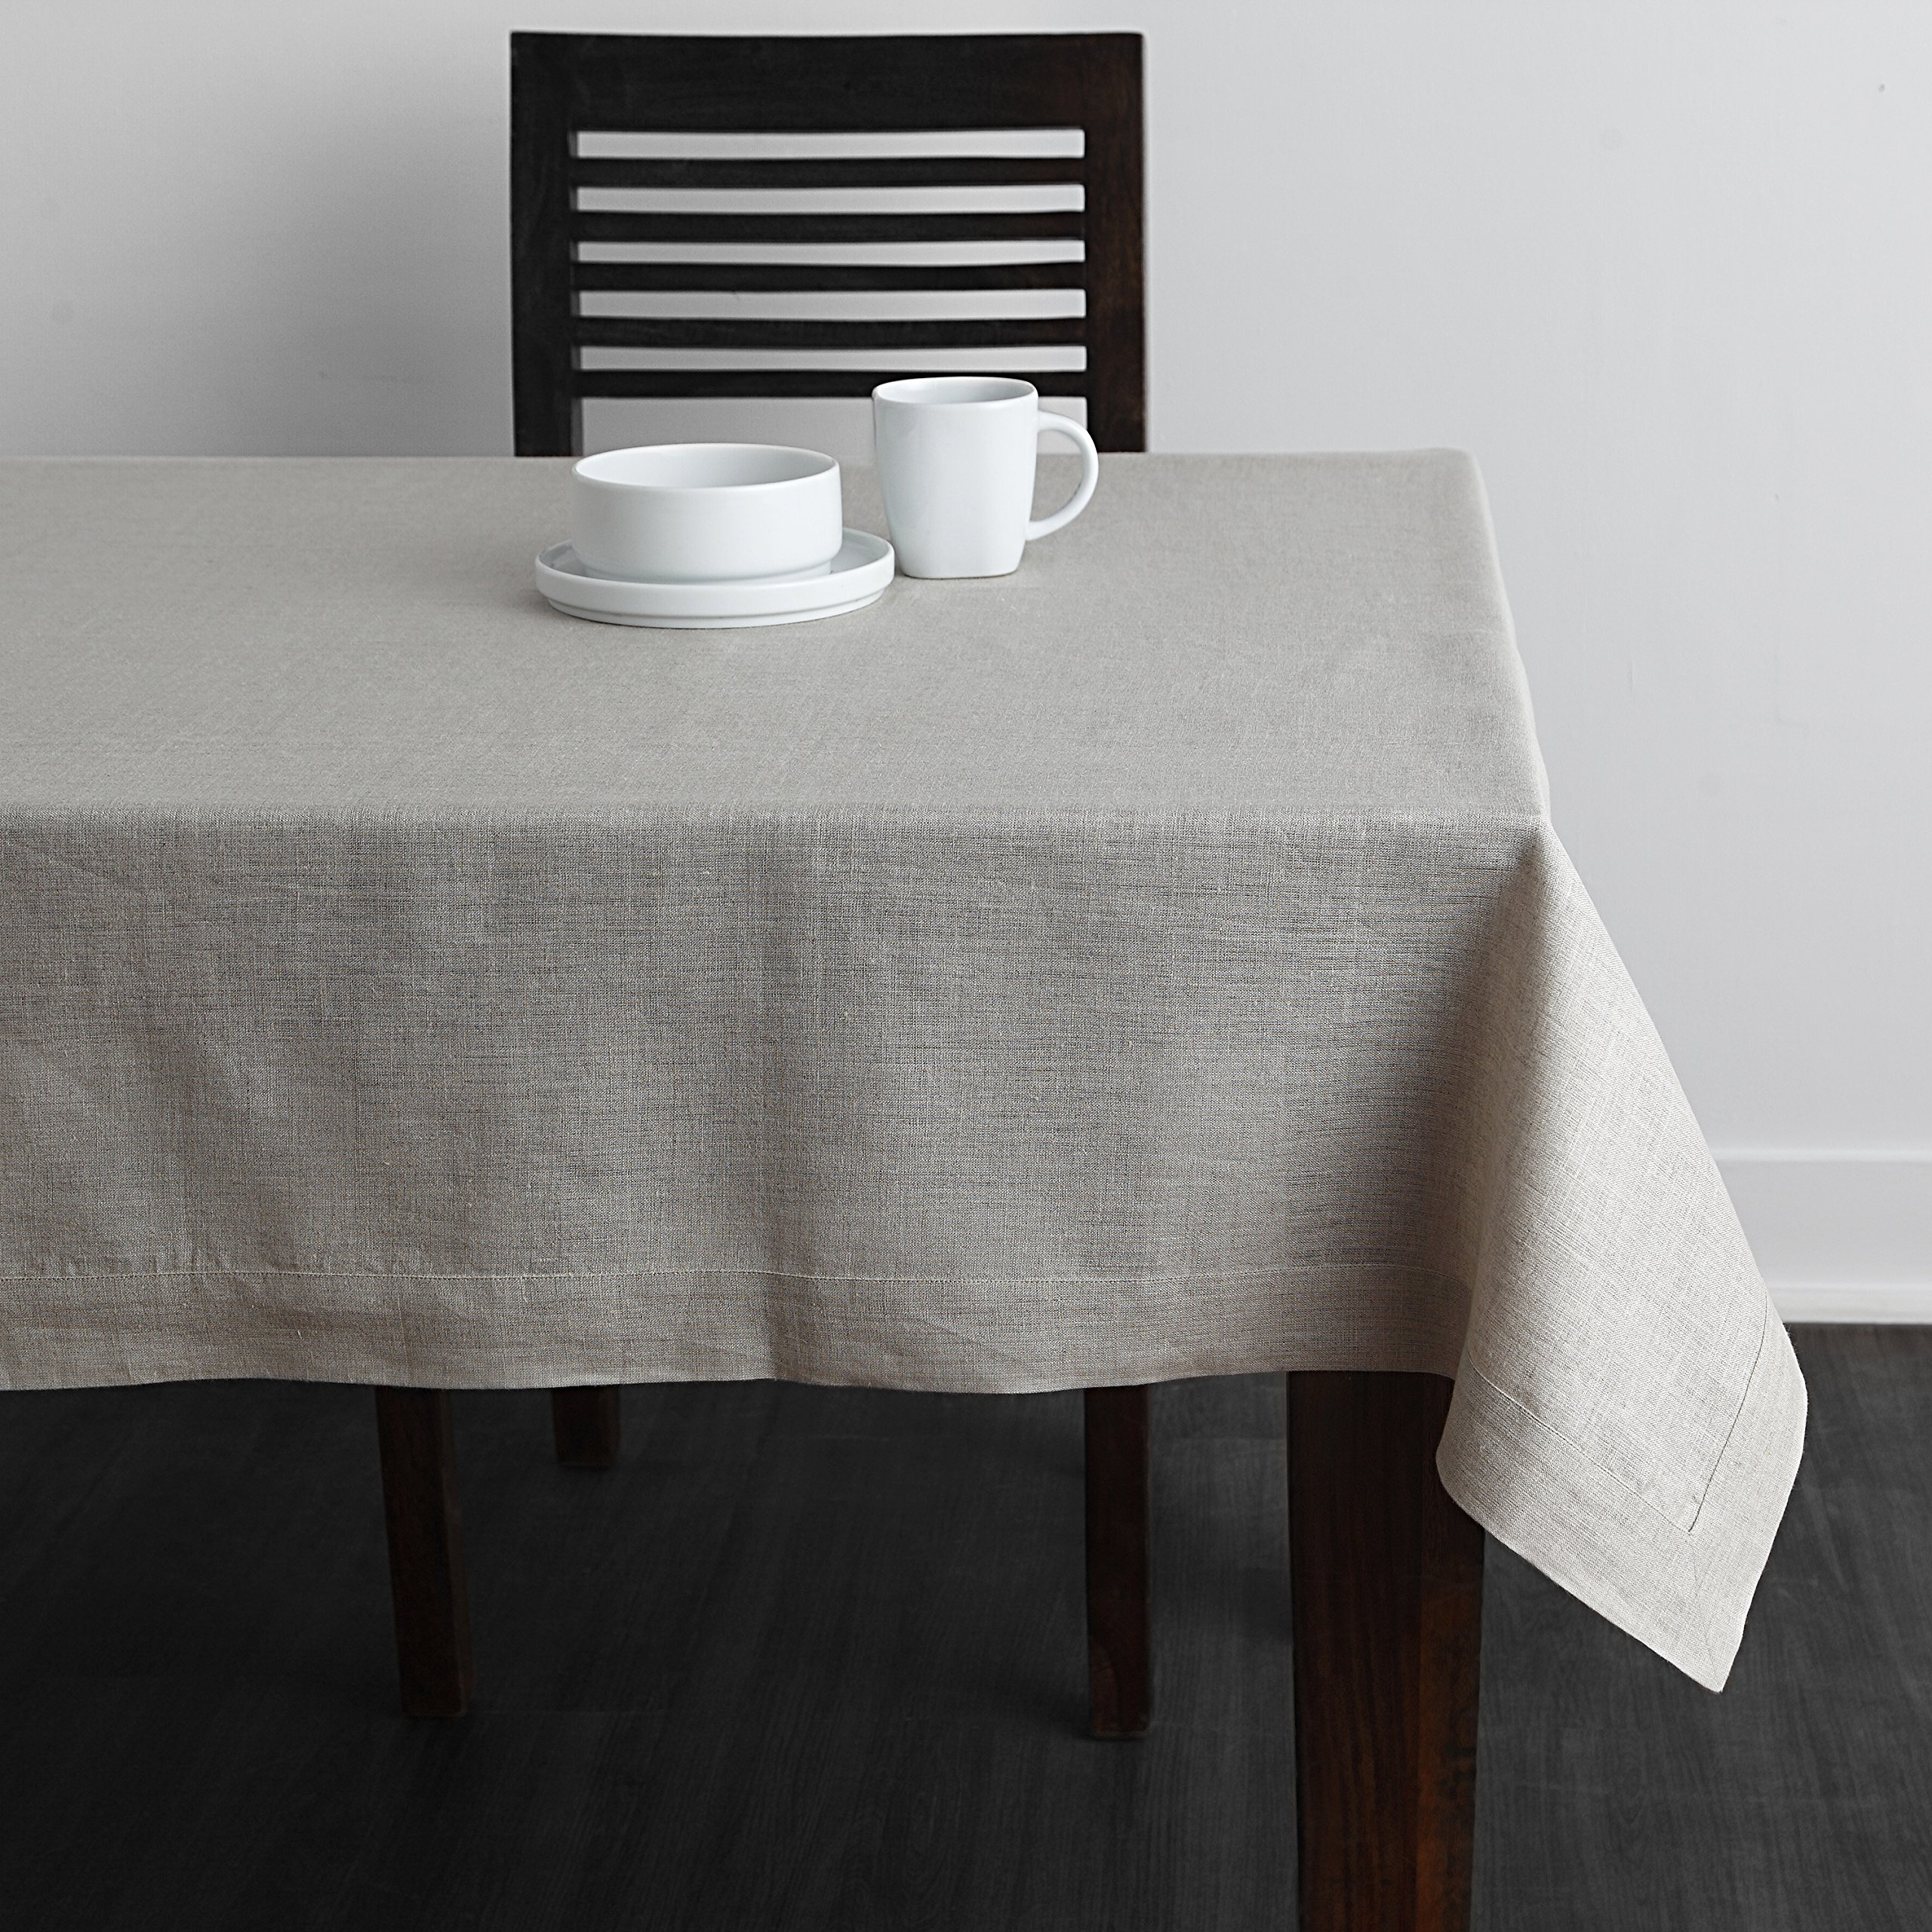 Solino Home 100% Pure Linen Plain Tablecloth Athena, Natural Rectangular Table Cloth for Indoor and Outdoor Use, 60 x 108 Inch Natural Tablecloth